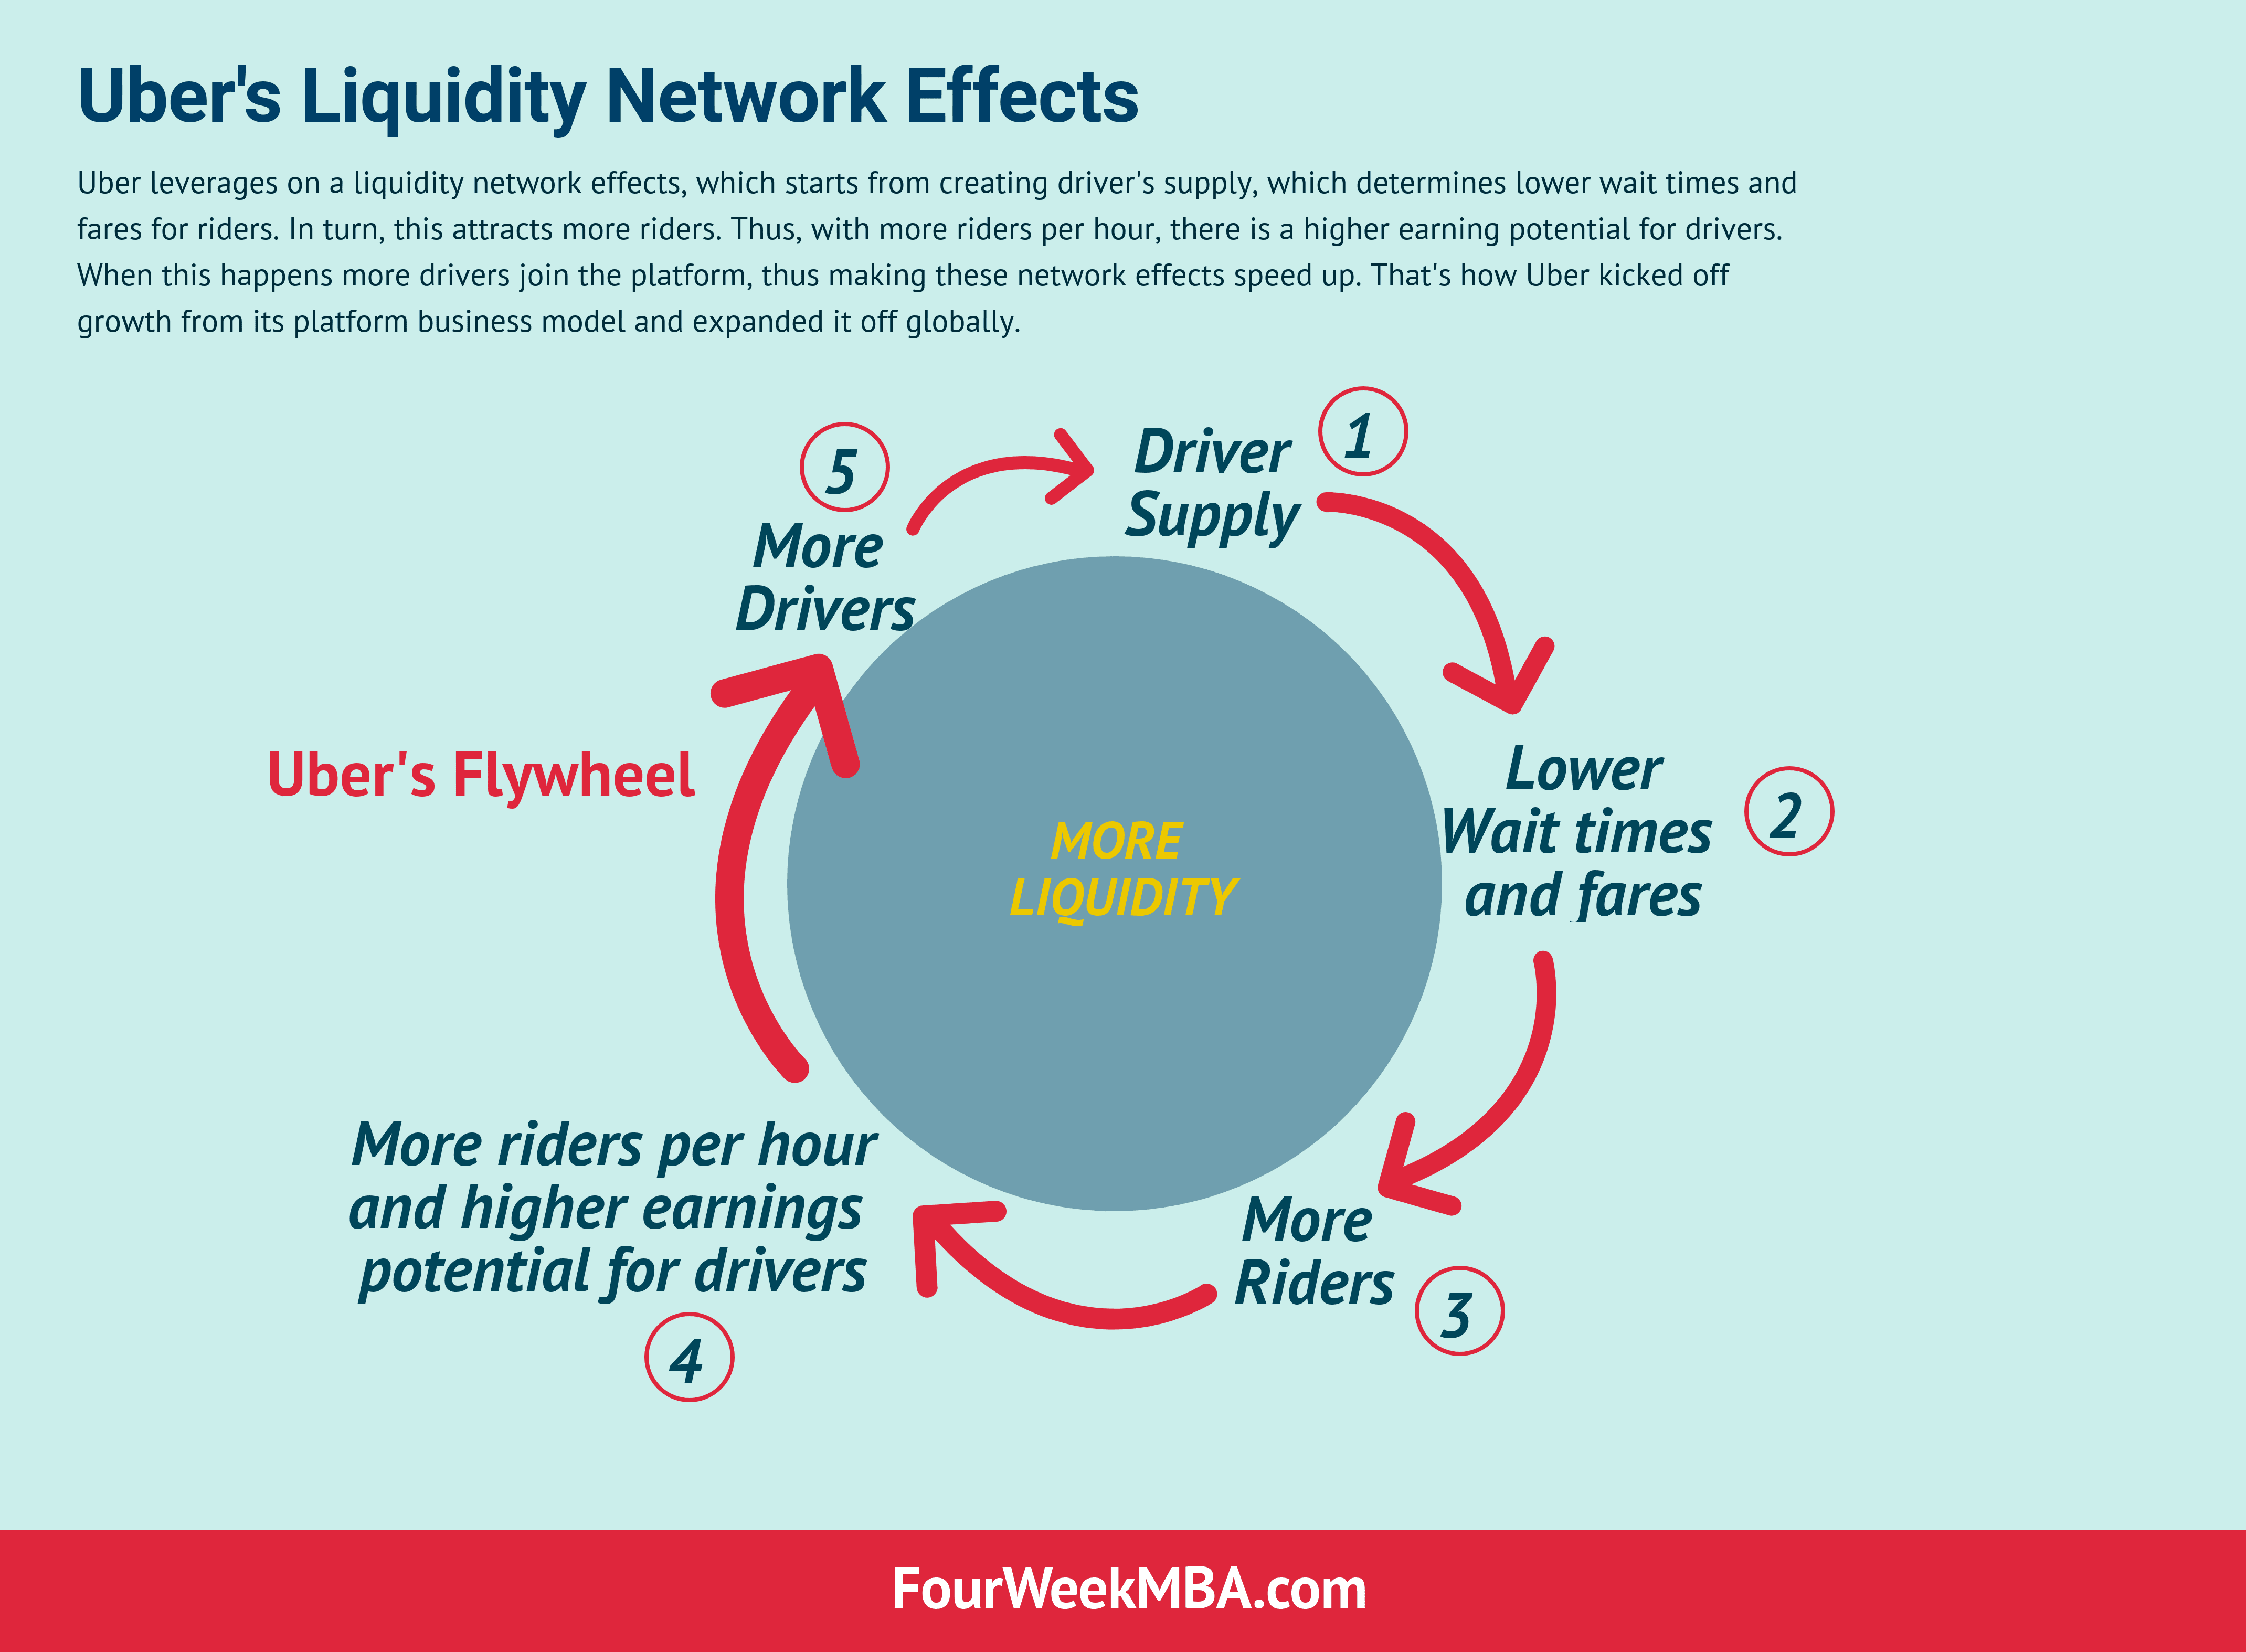 Uber Business Strategy: Liquidity Network Effects To Spark Growth